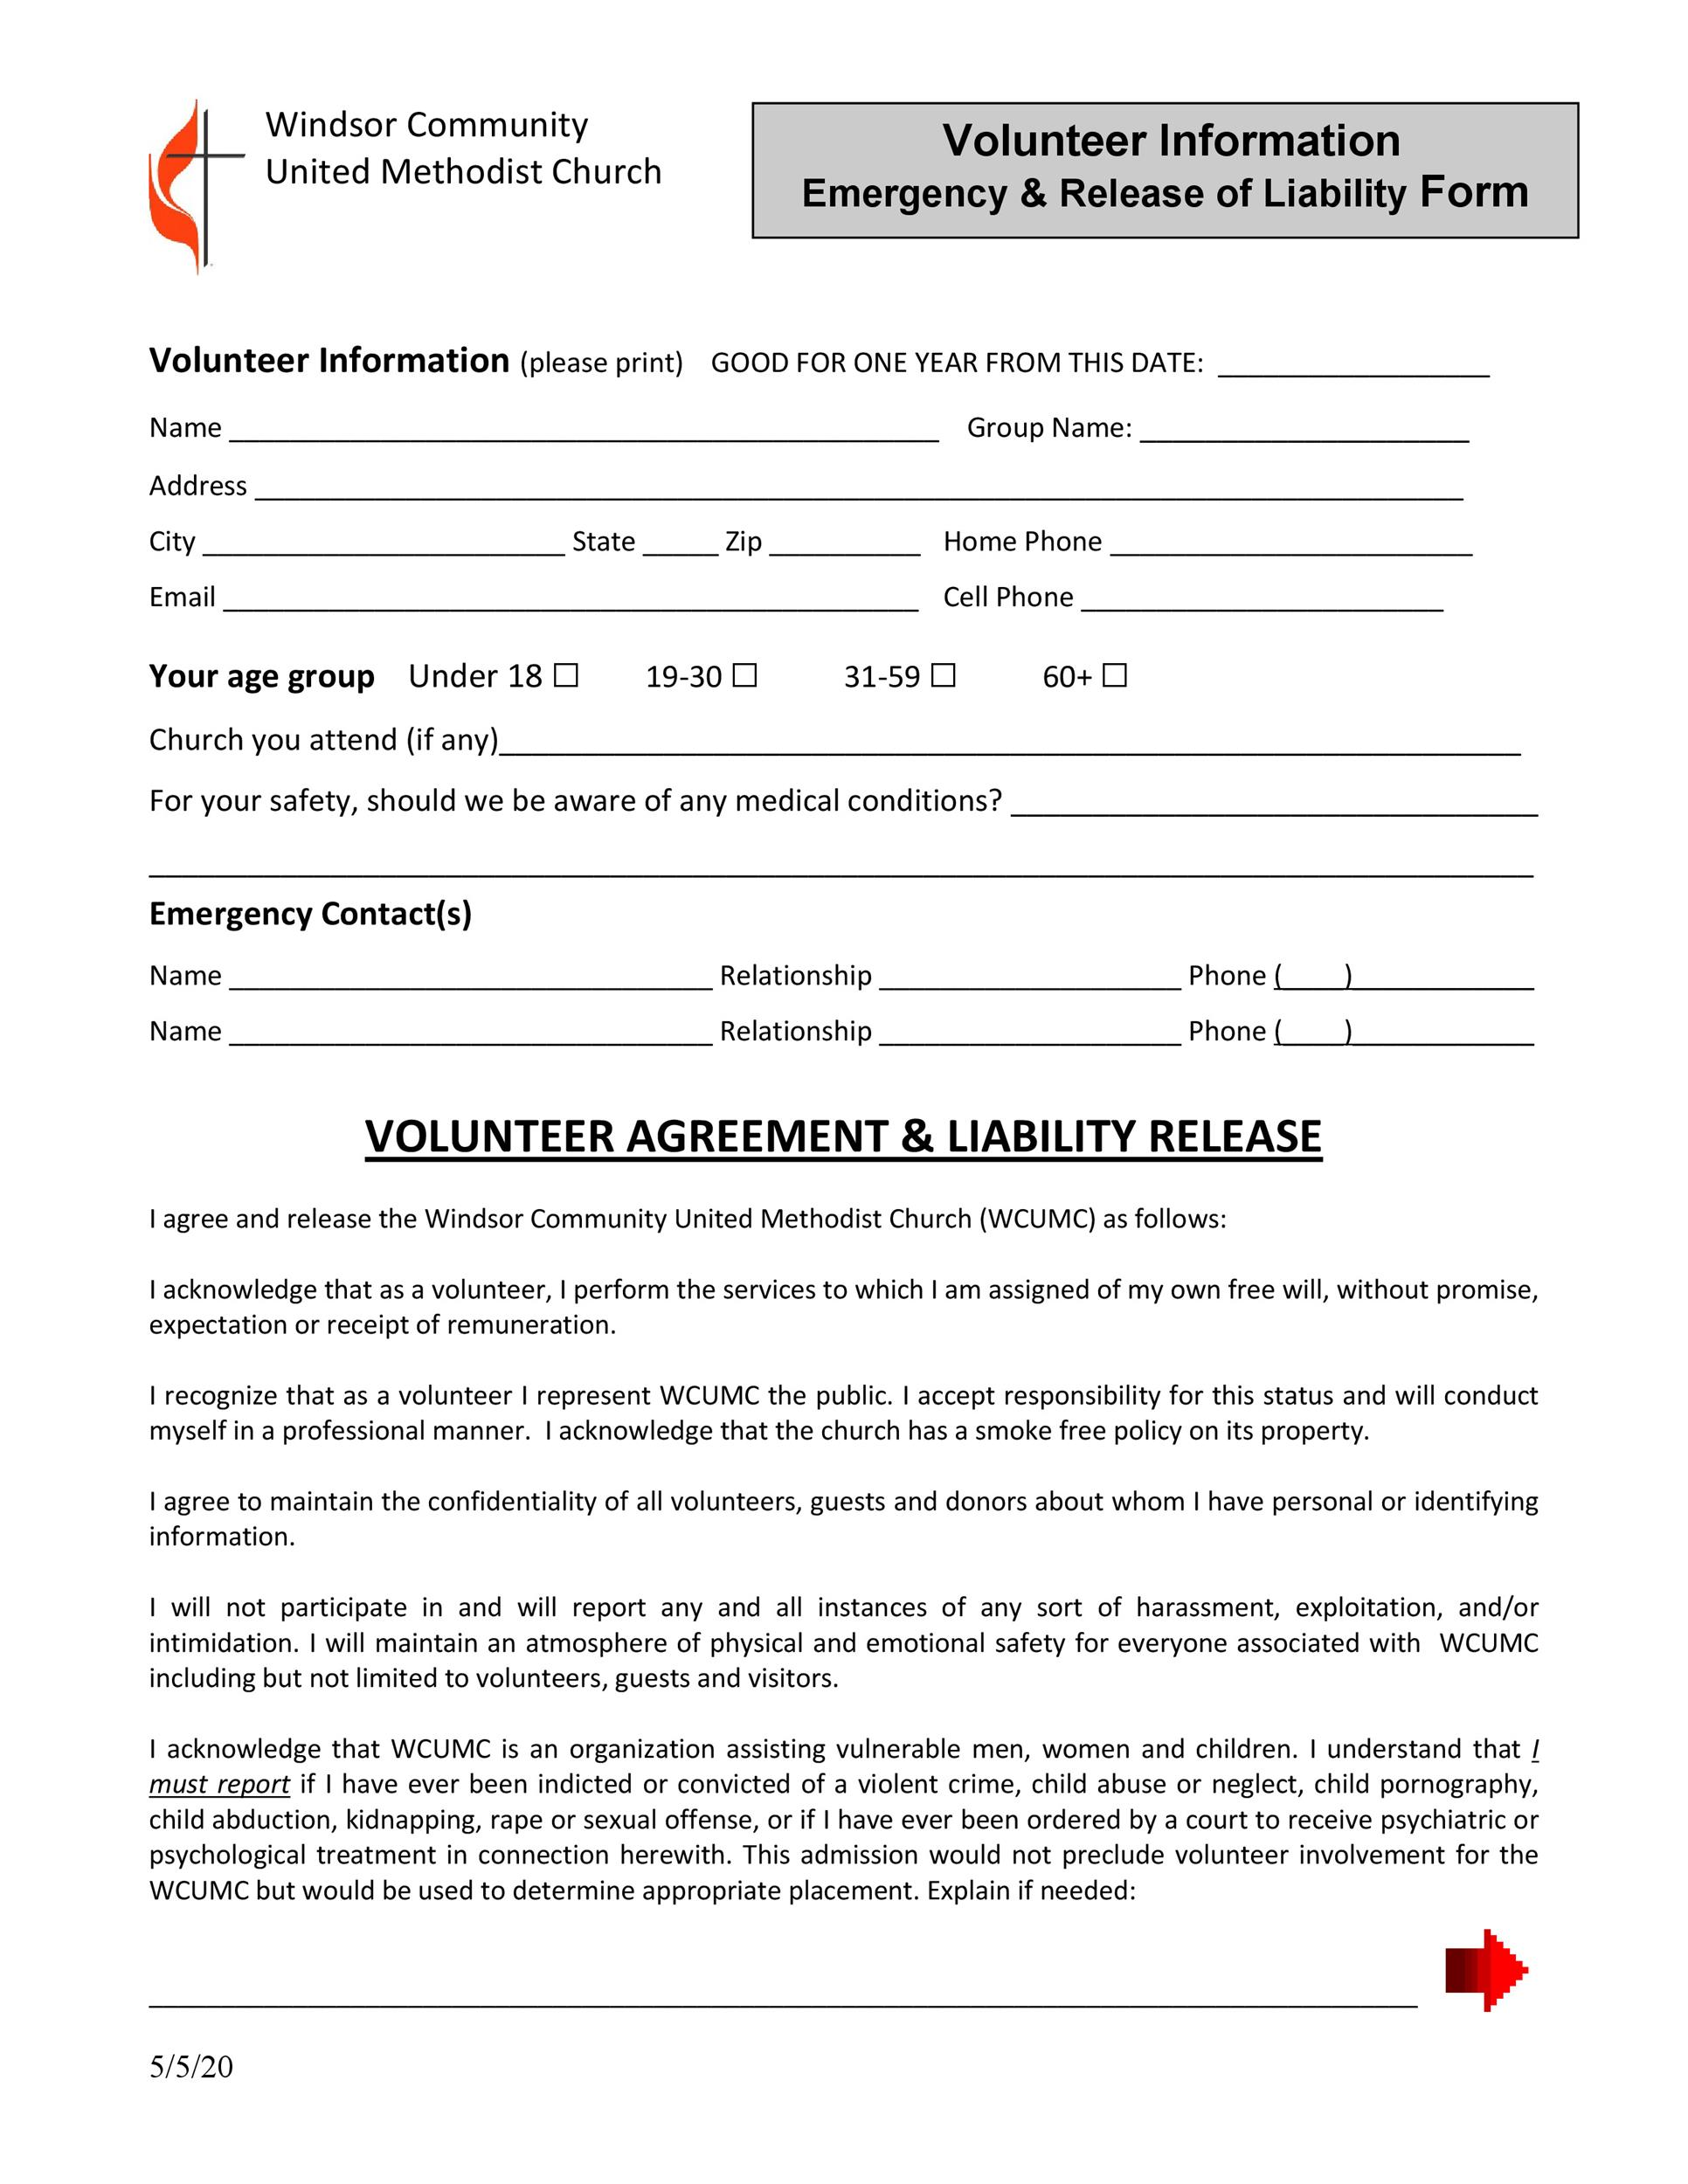 Free release of liability form 04